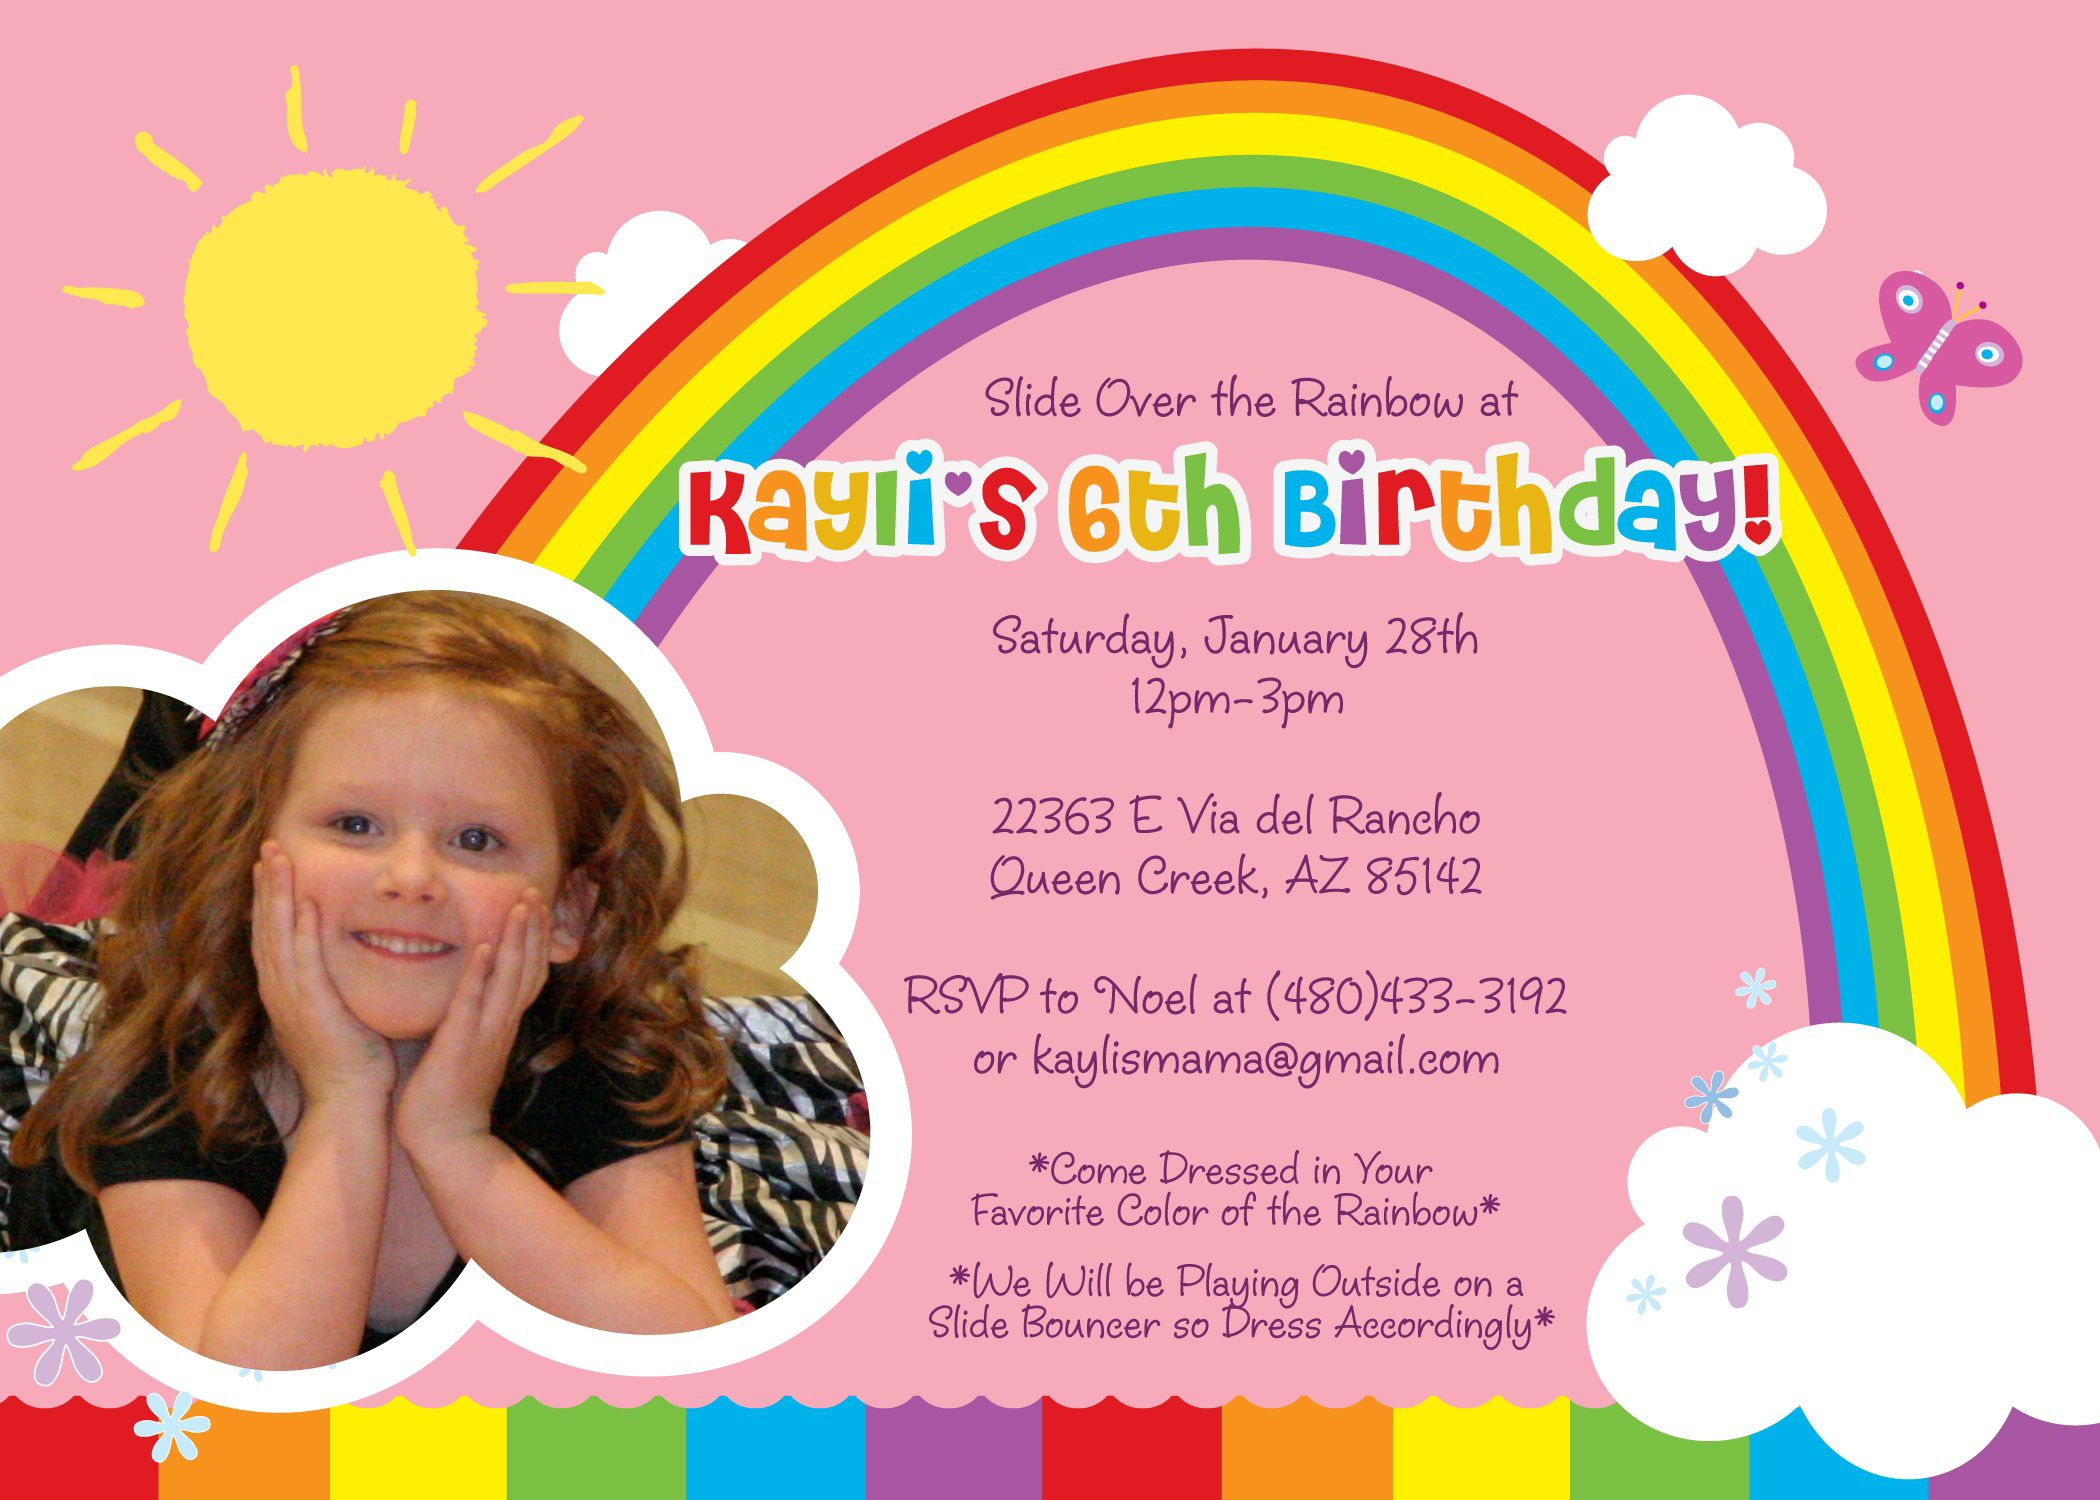 birthday party invitation template quotes invitation templates birthday party invitation template quotes invitation templates